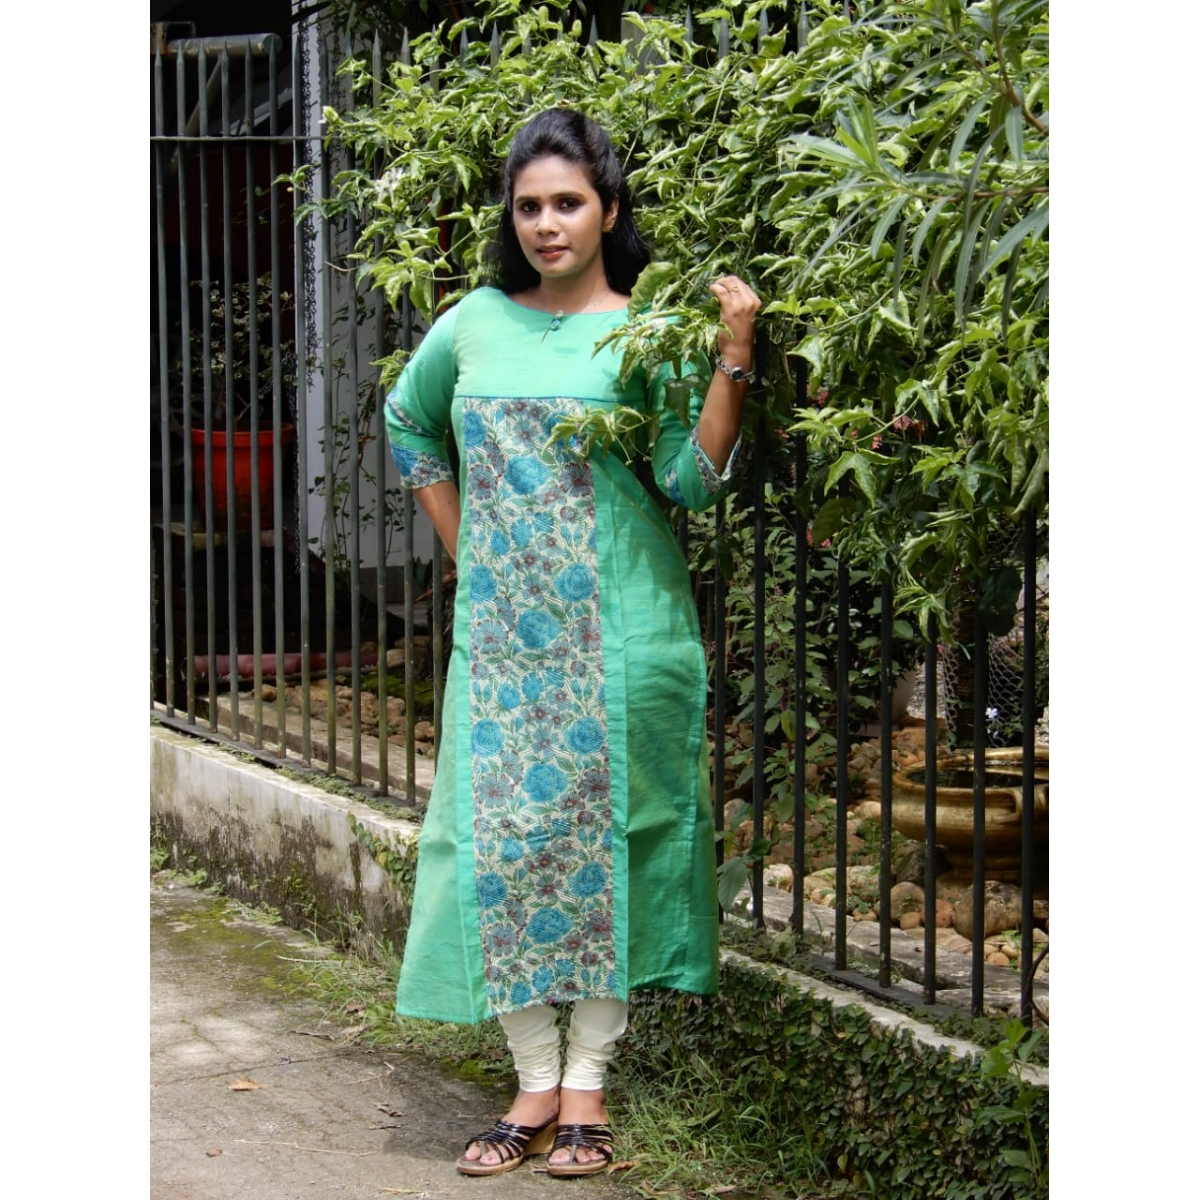 Pastel green chandheri cotton with pattern and paneling  of floral printed phulkari kota and button  detailing on boat neck